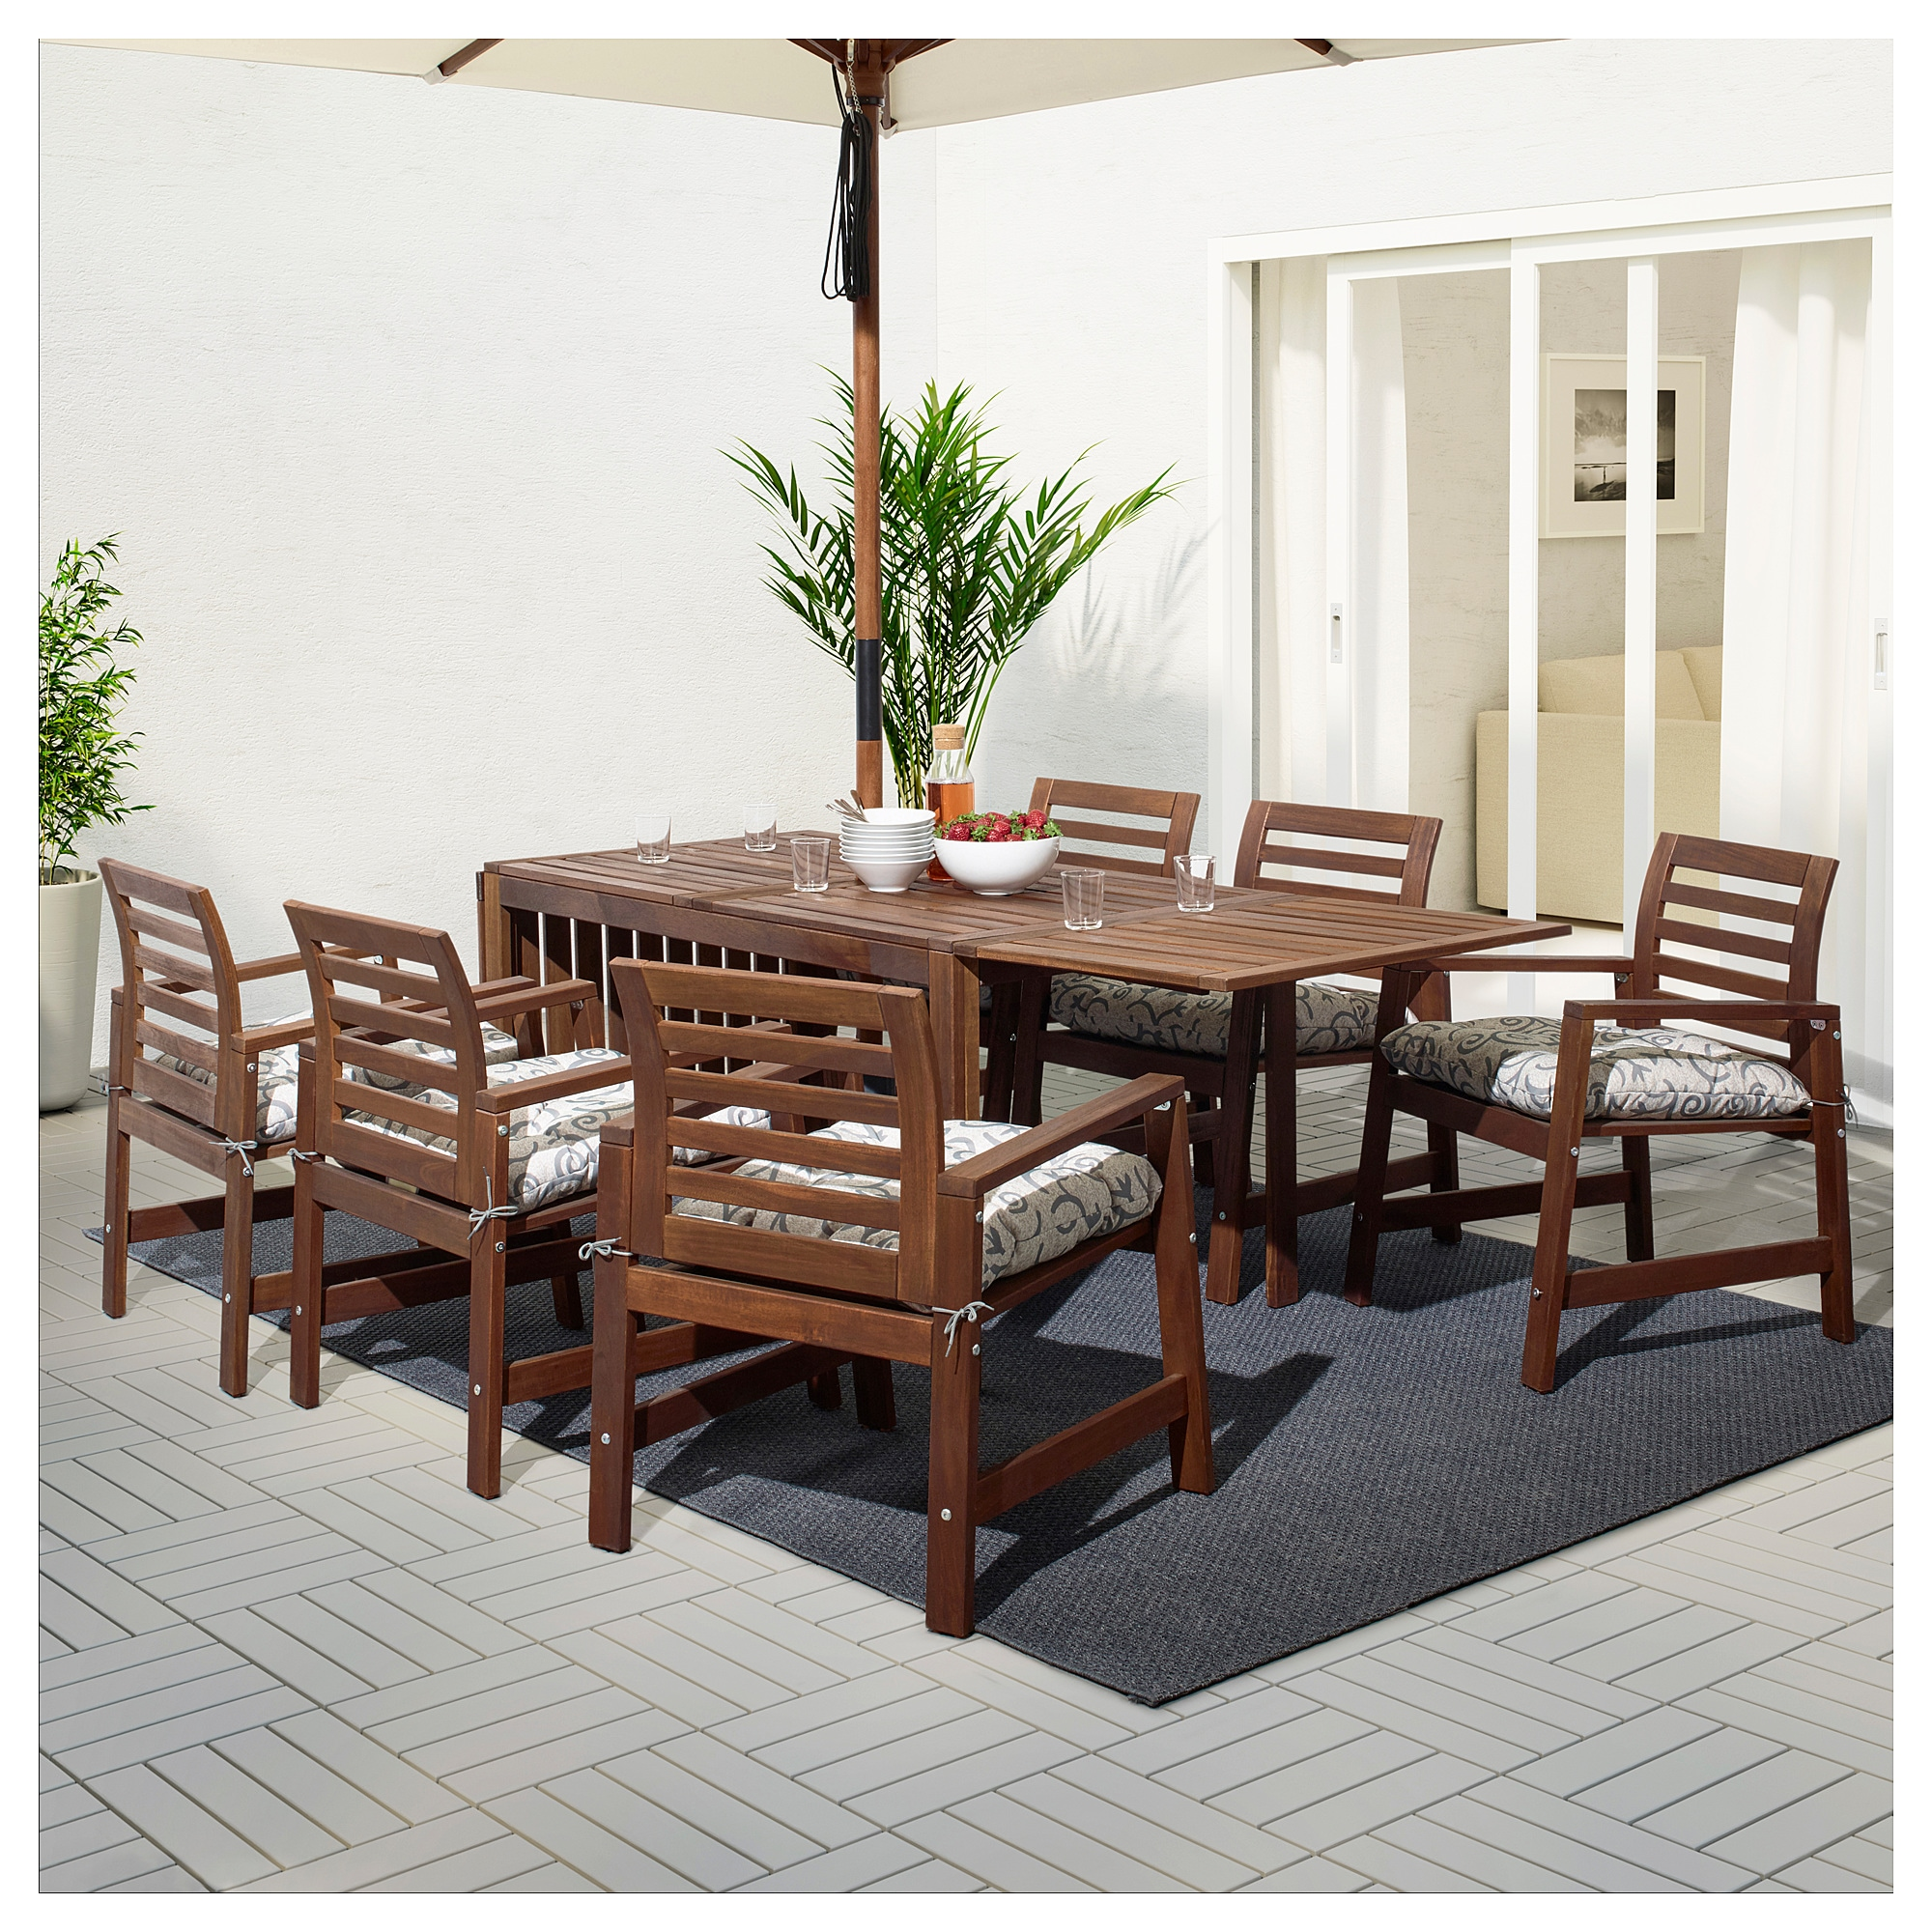 Applaro Table 6 Chairs W Armrests Outdoor Applaro Brown Stained